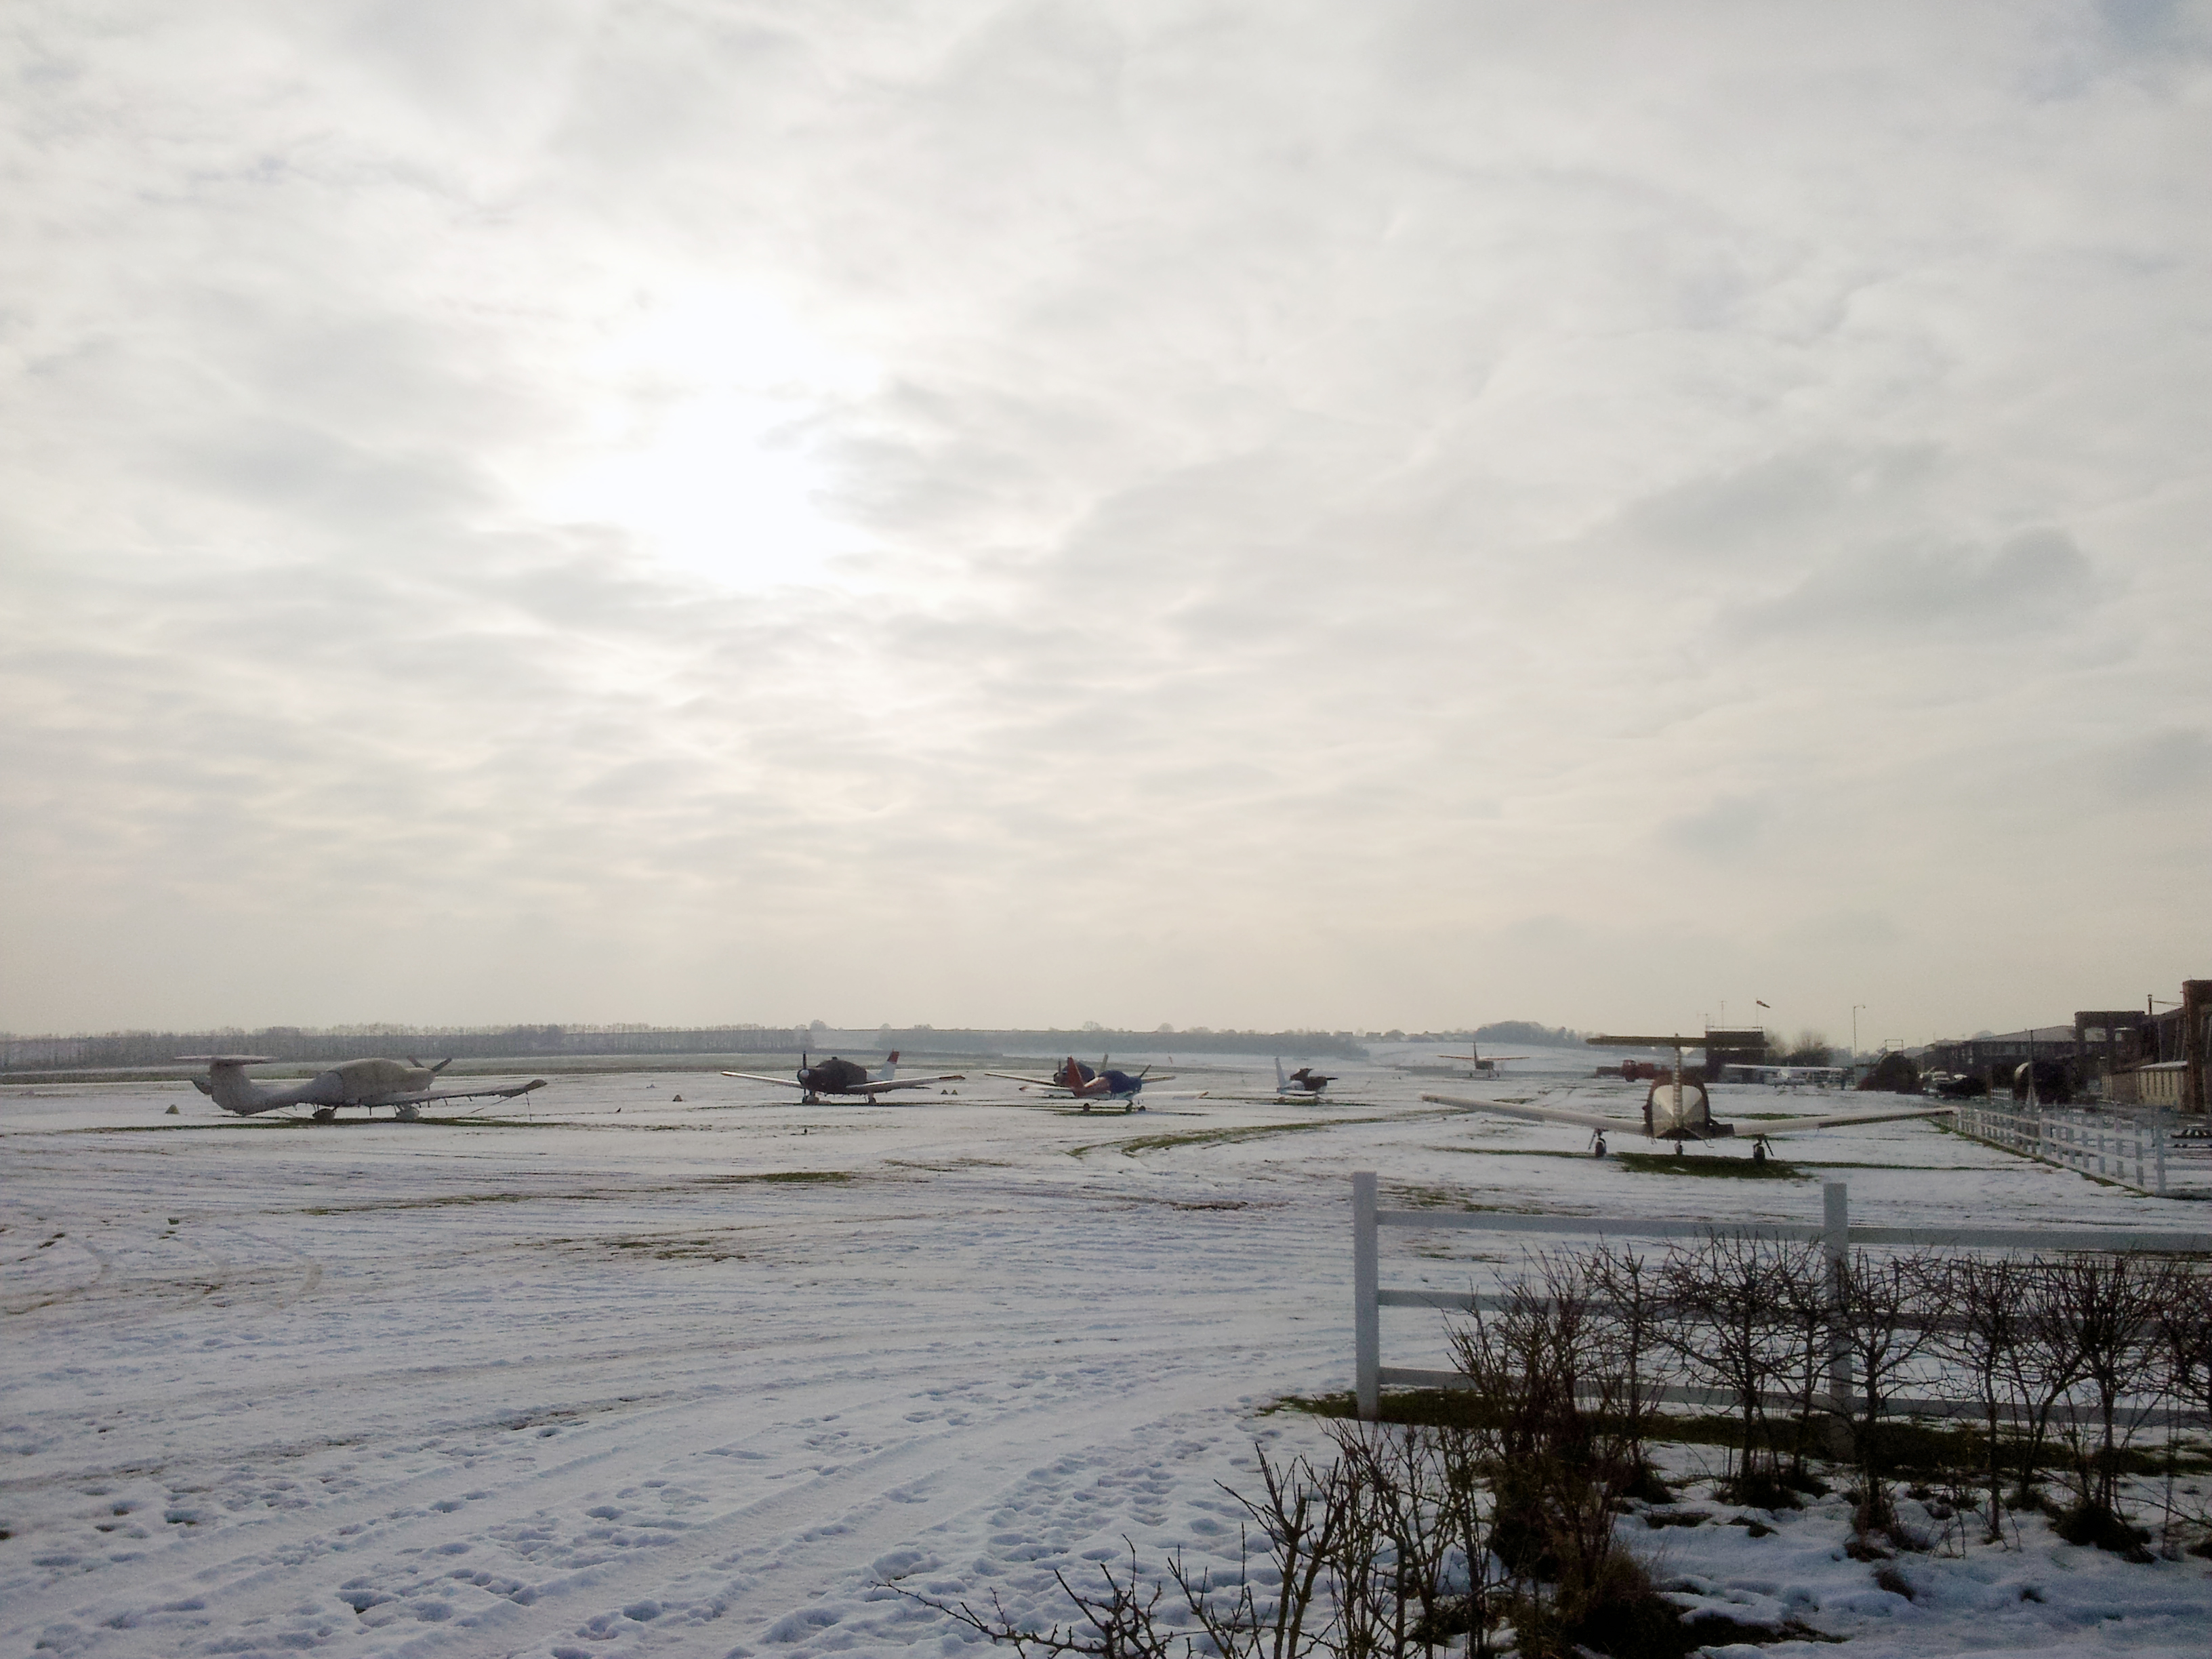 Snow covered airfield